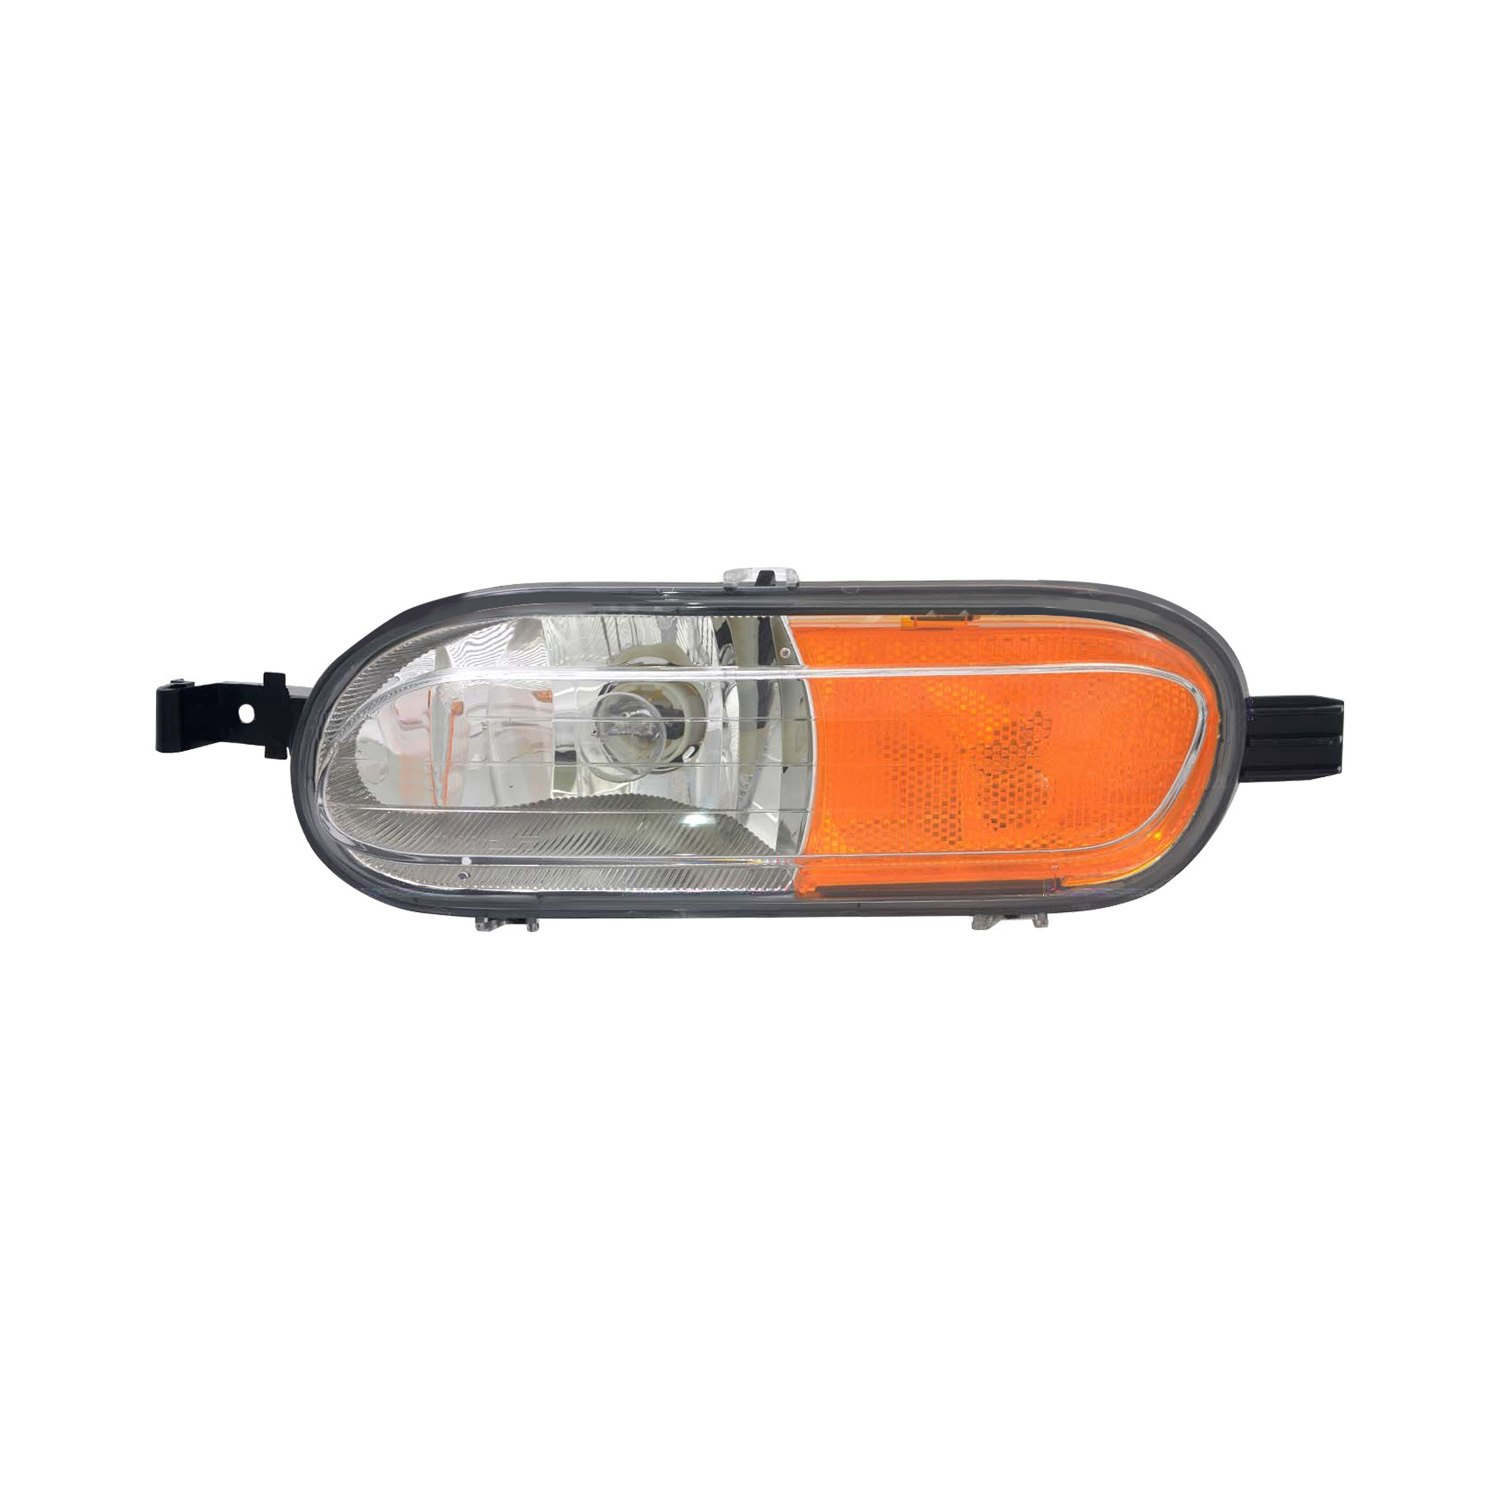 TYC 18 6108 00 1 Driver Side NSF Certified Replacement Side Marker Light